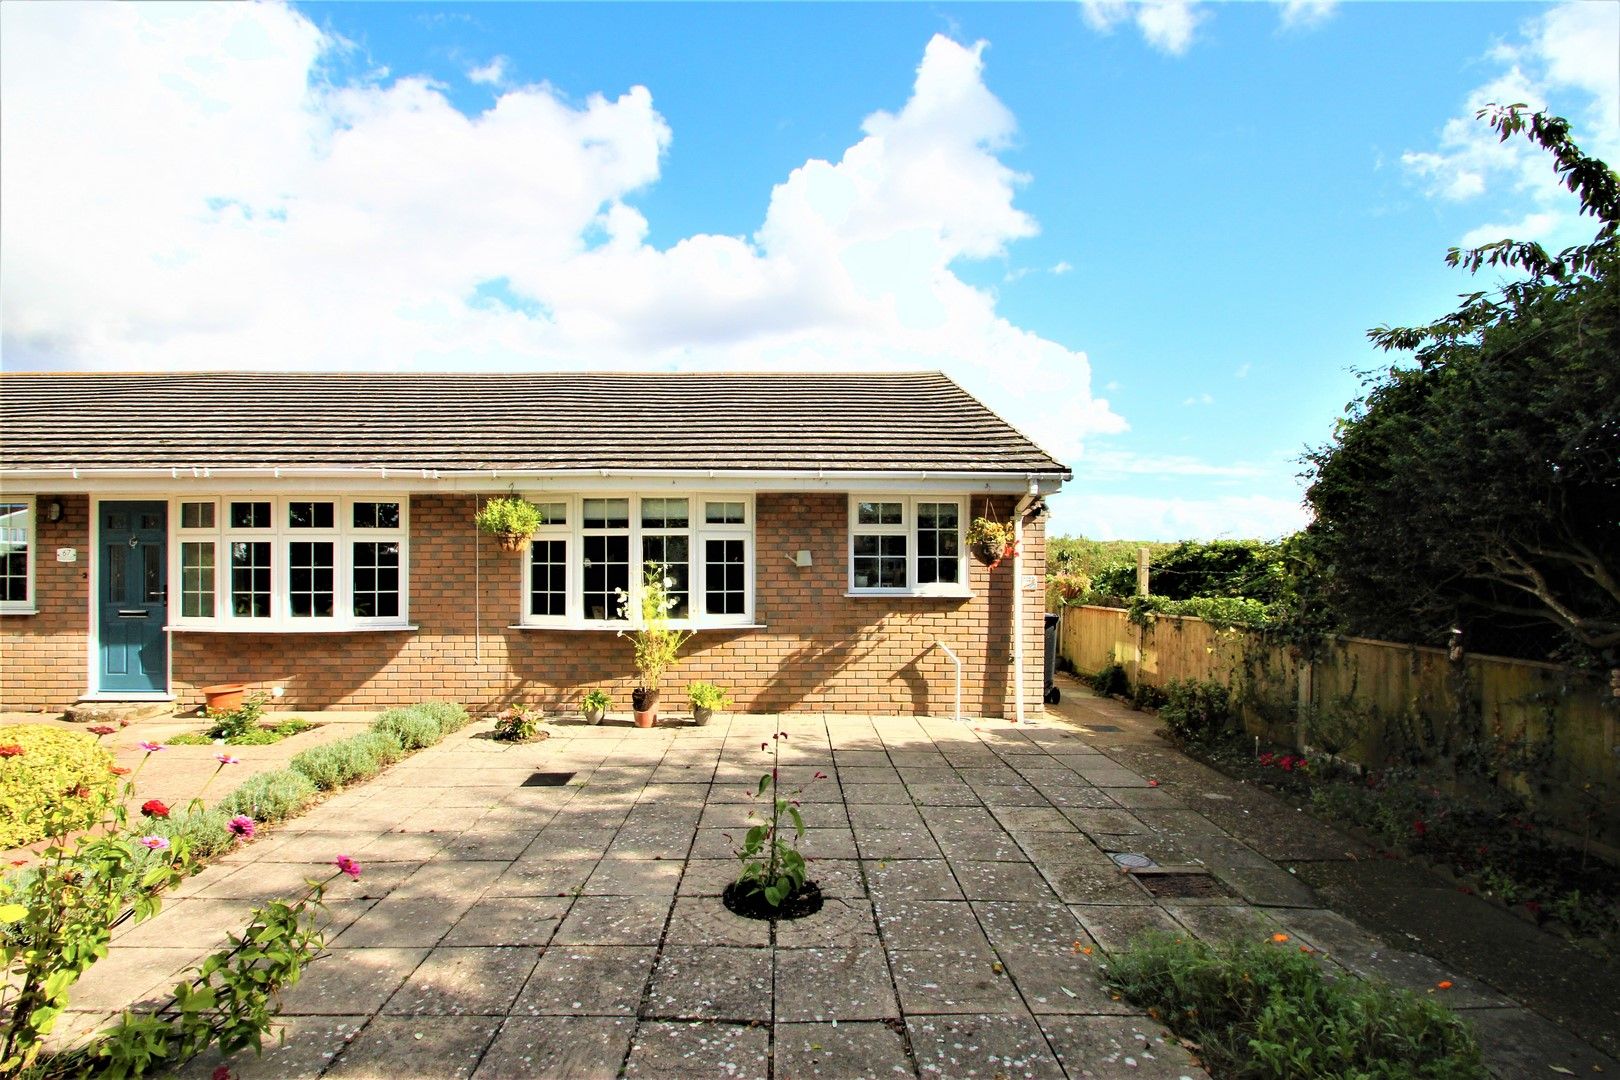 2 Bedroom Bungalow in Christchurch